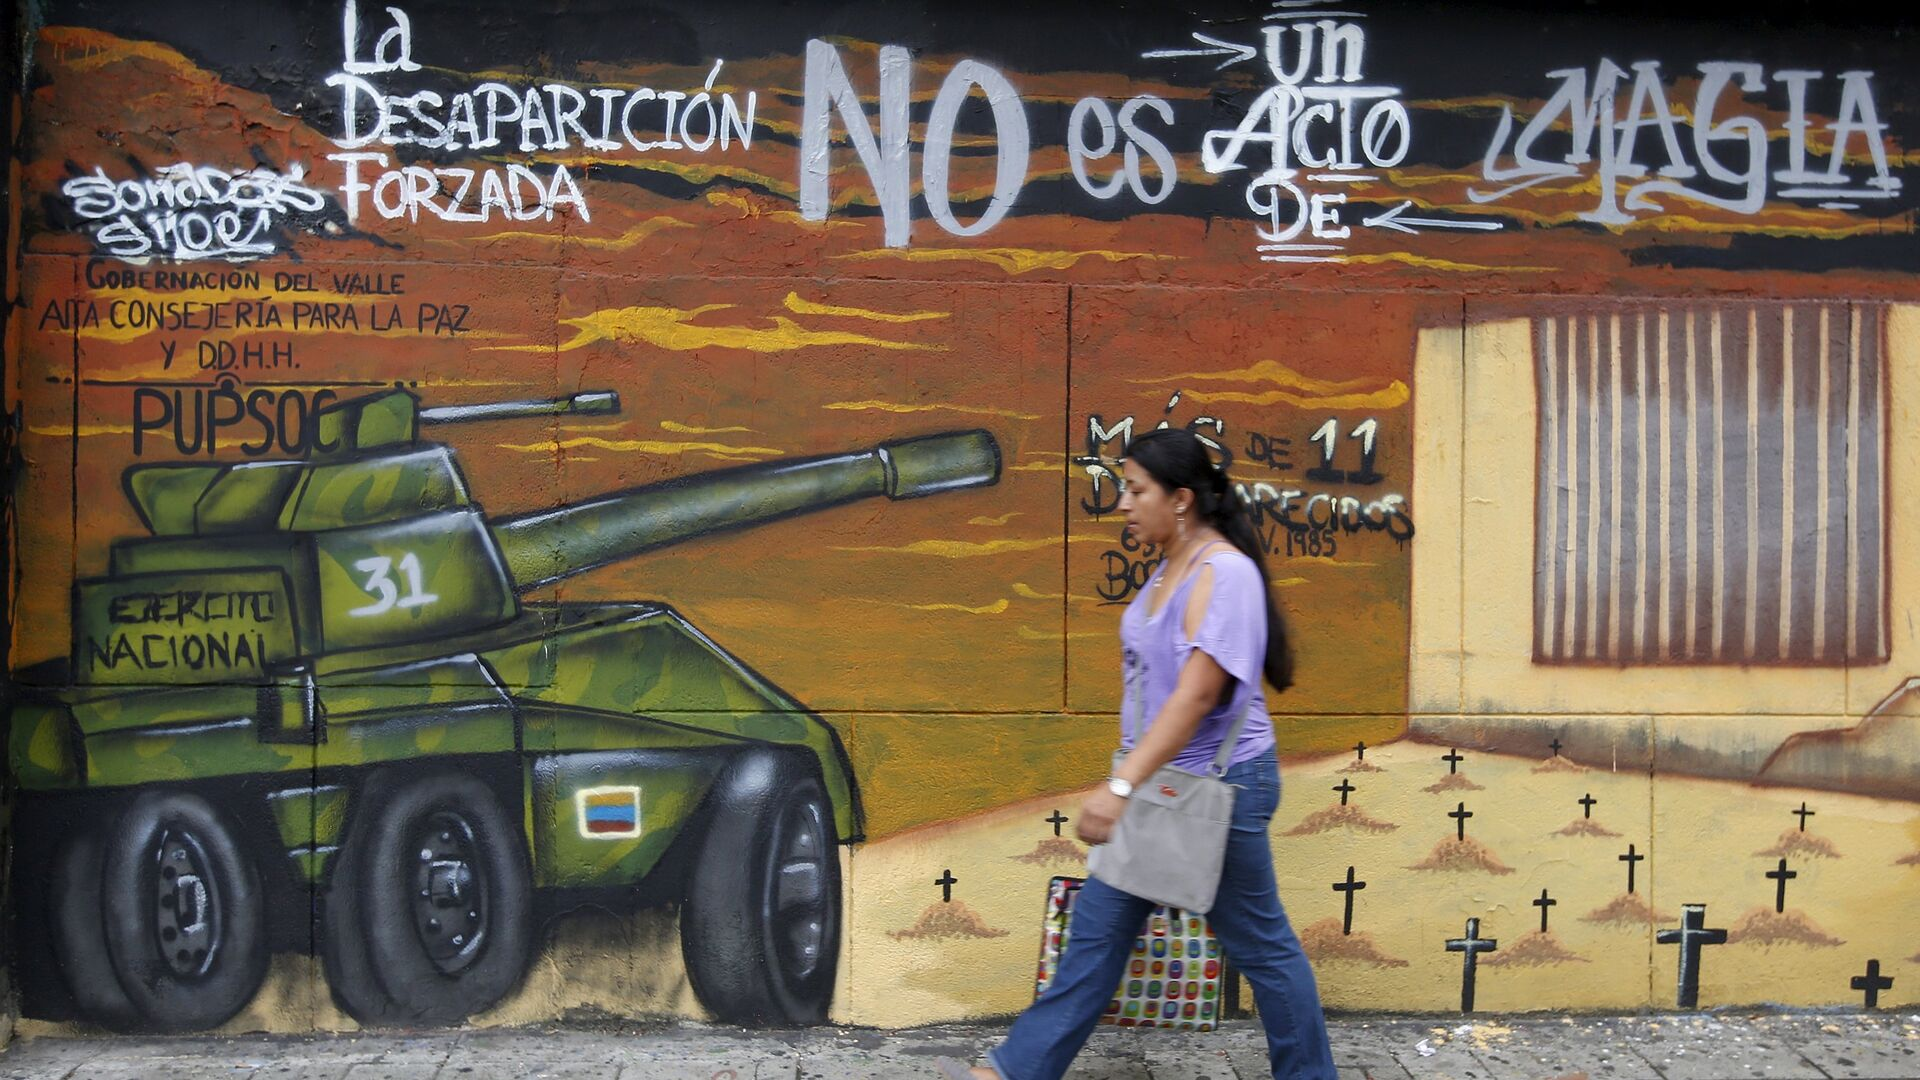 A woman walks in front of a mural during a commemoration day to show solidarity with the victims of armed conflict, in Cali, Colombia April 9, 2016 - Sputnik Mundo, 1920, 06.10.2021